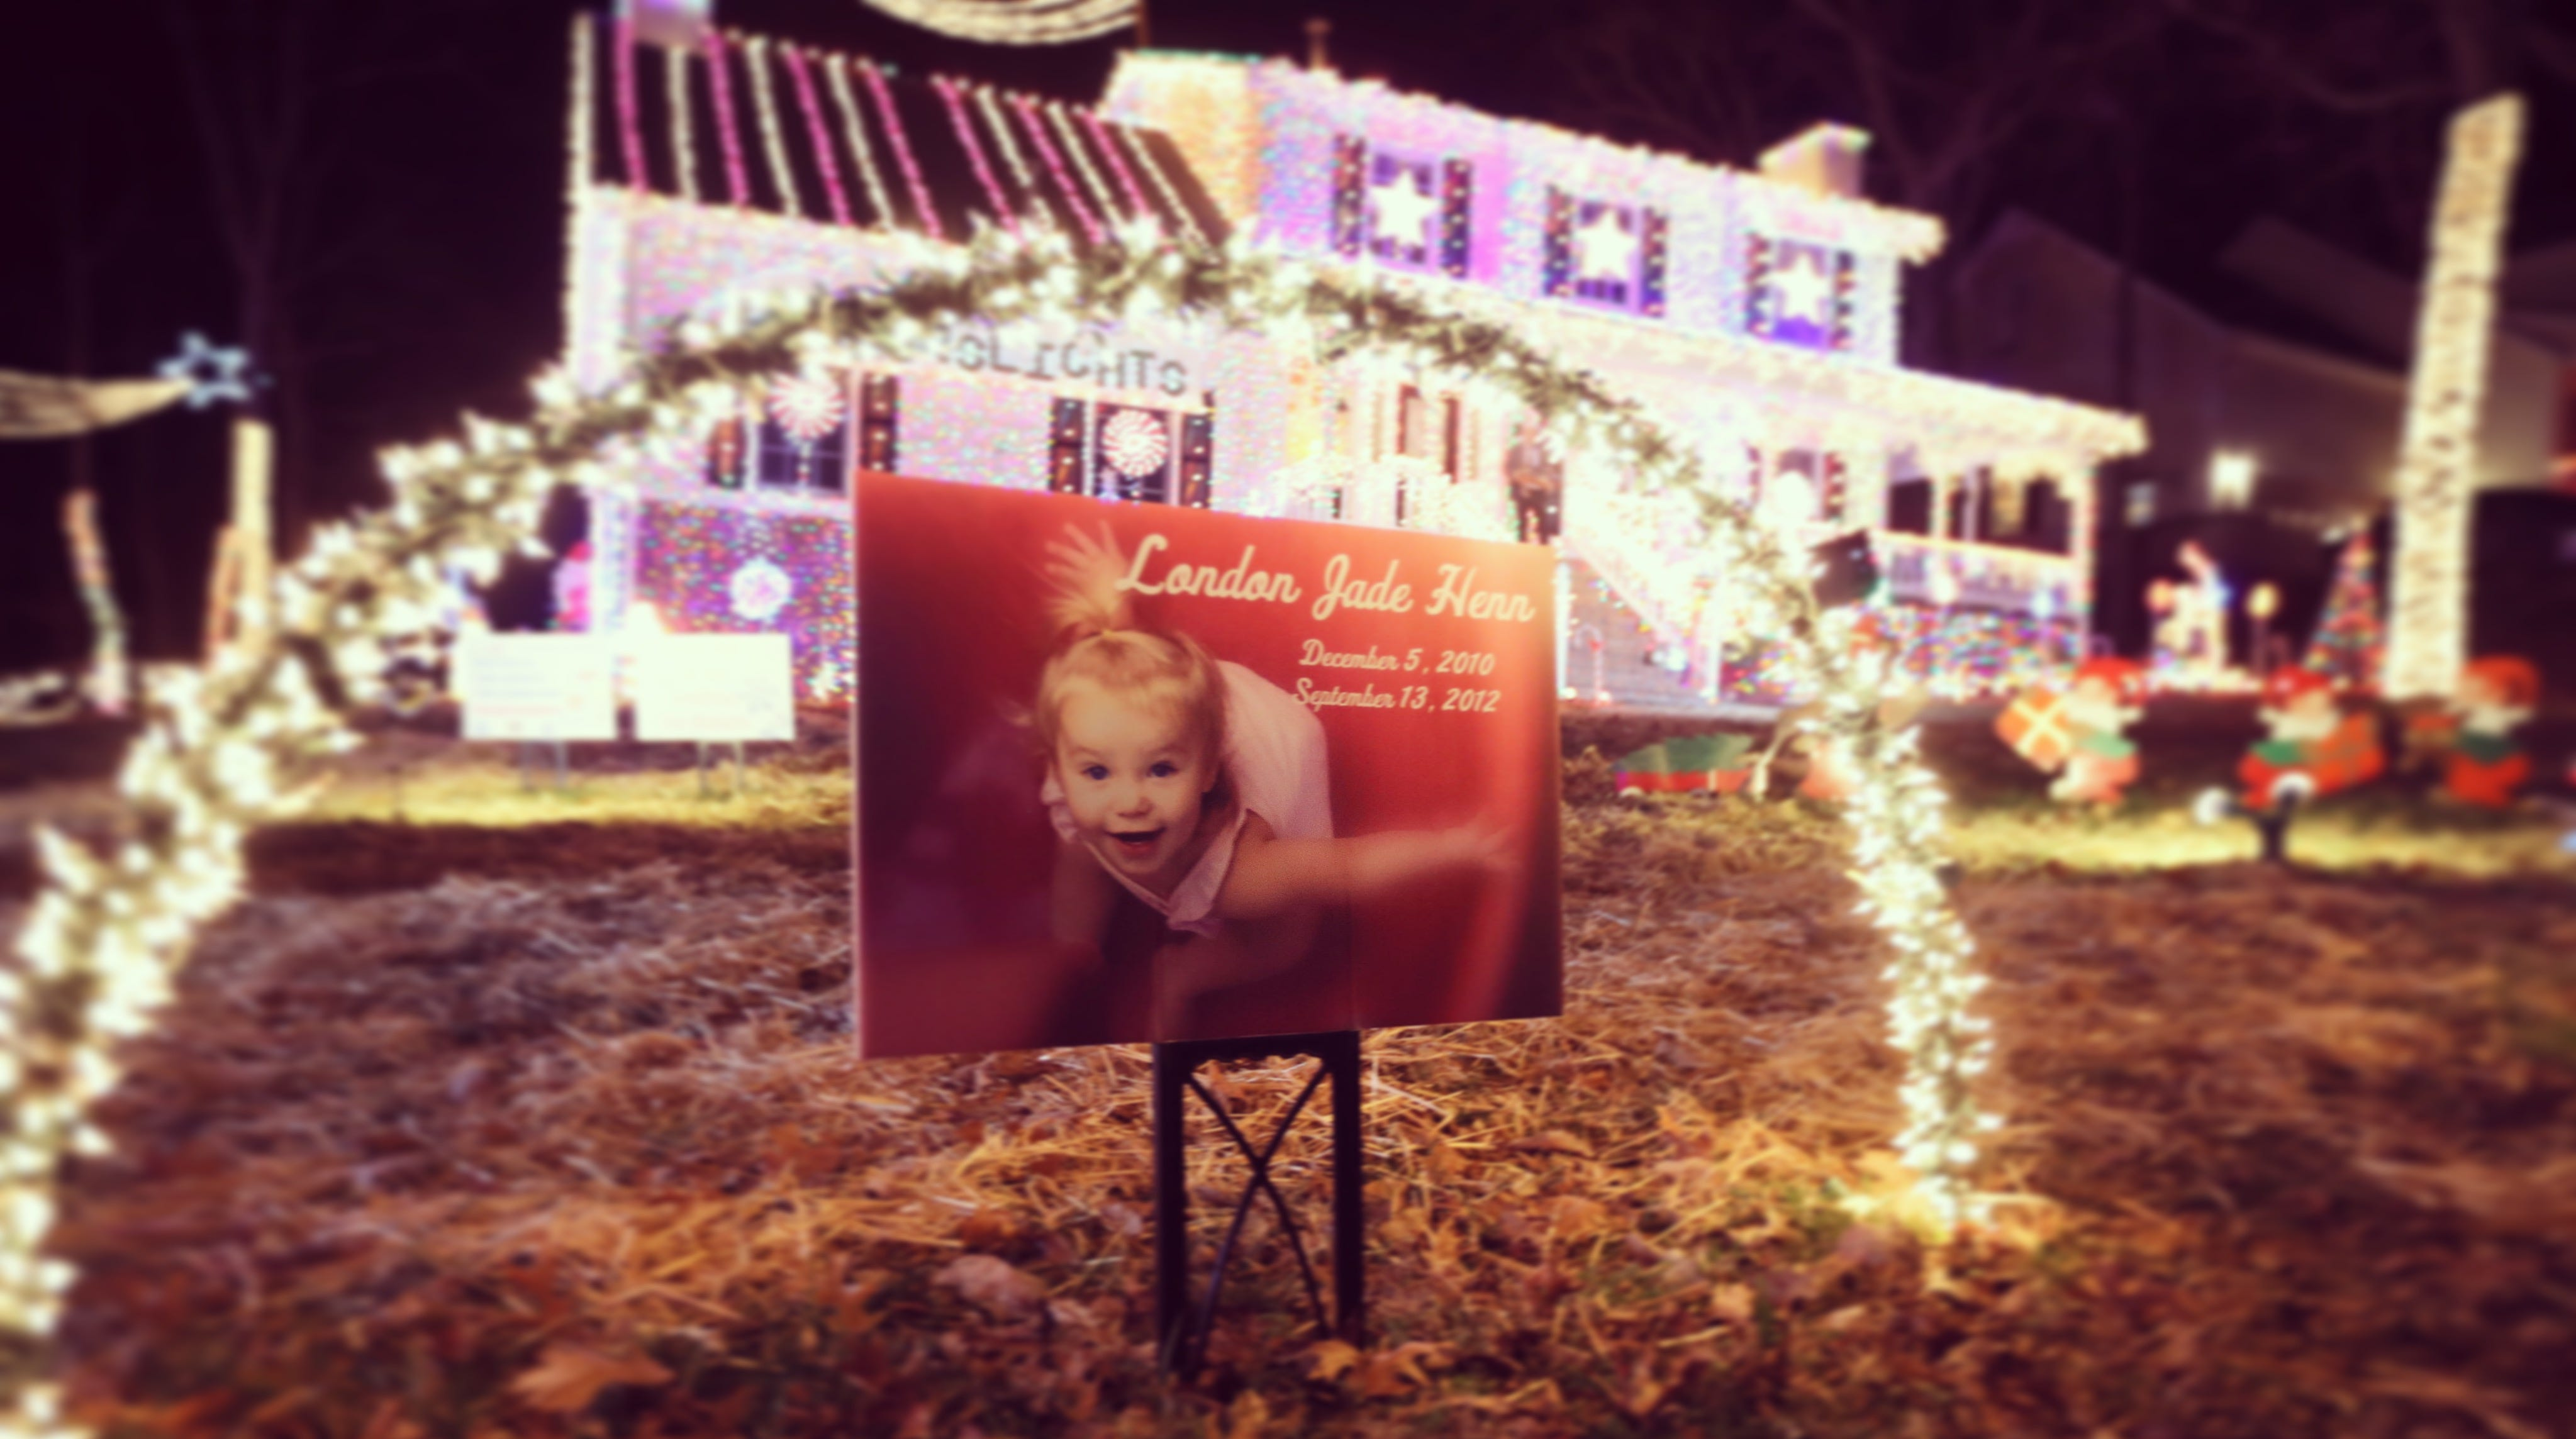 London Henn died when she was 21 months old. Her father, Brad Henn, puts up a Christmas display of 300,000 lights at his La Vergne home in her memory.